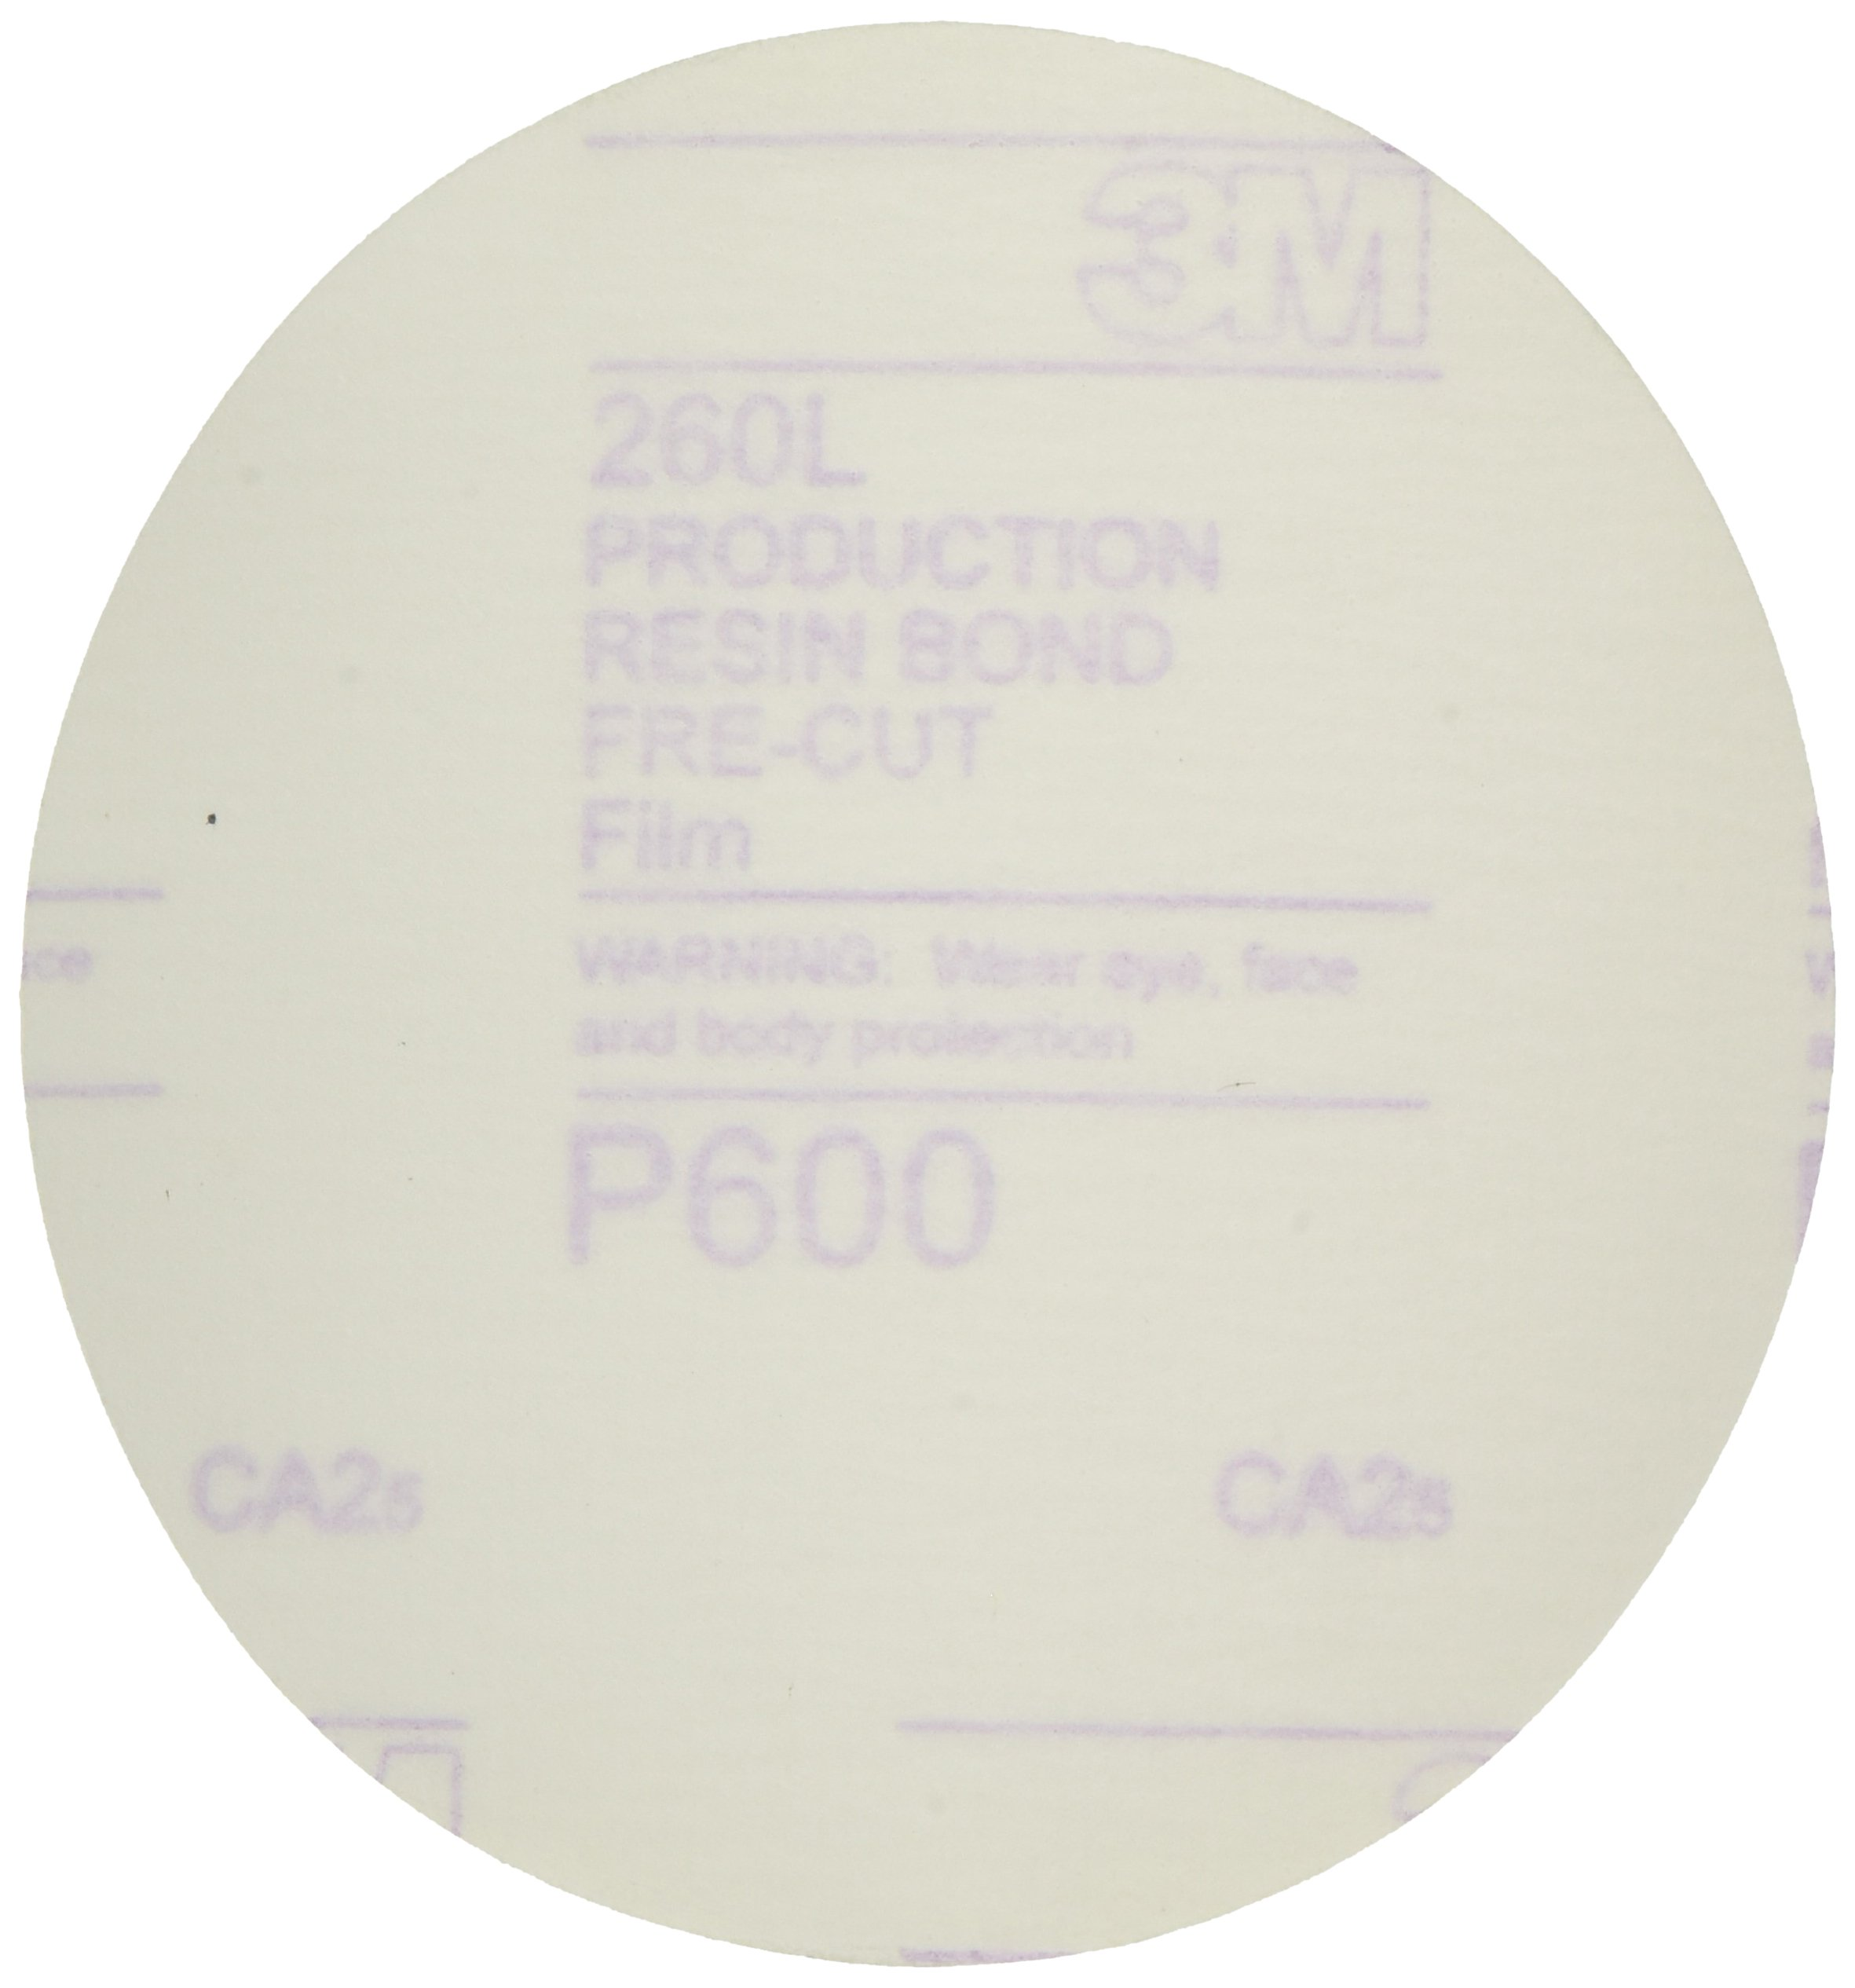 3M 00955 Hookit 5'' P600 Grit Finishing Film Disc